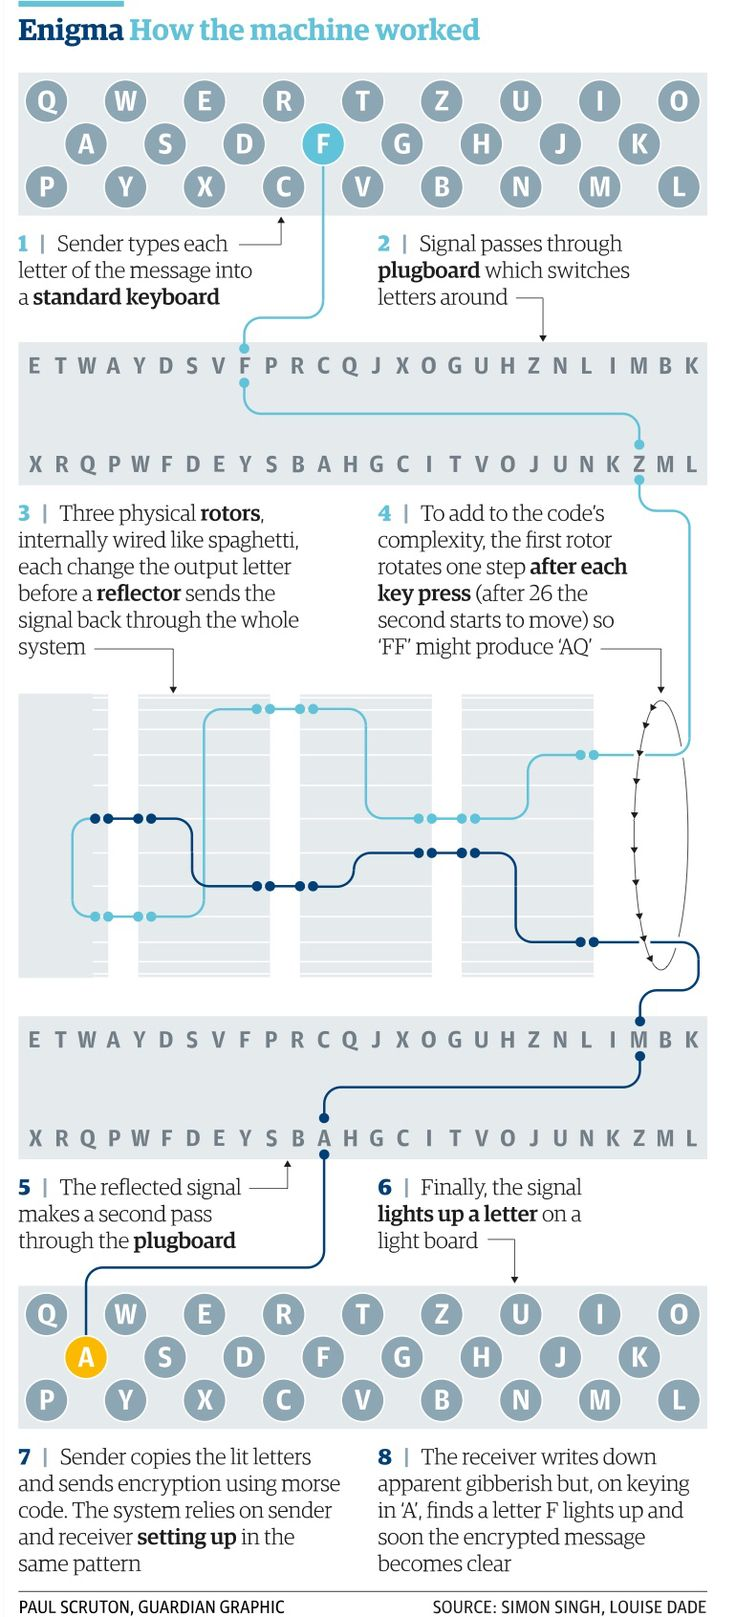 How the enigma machine worked- could be useful for our design also